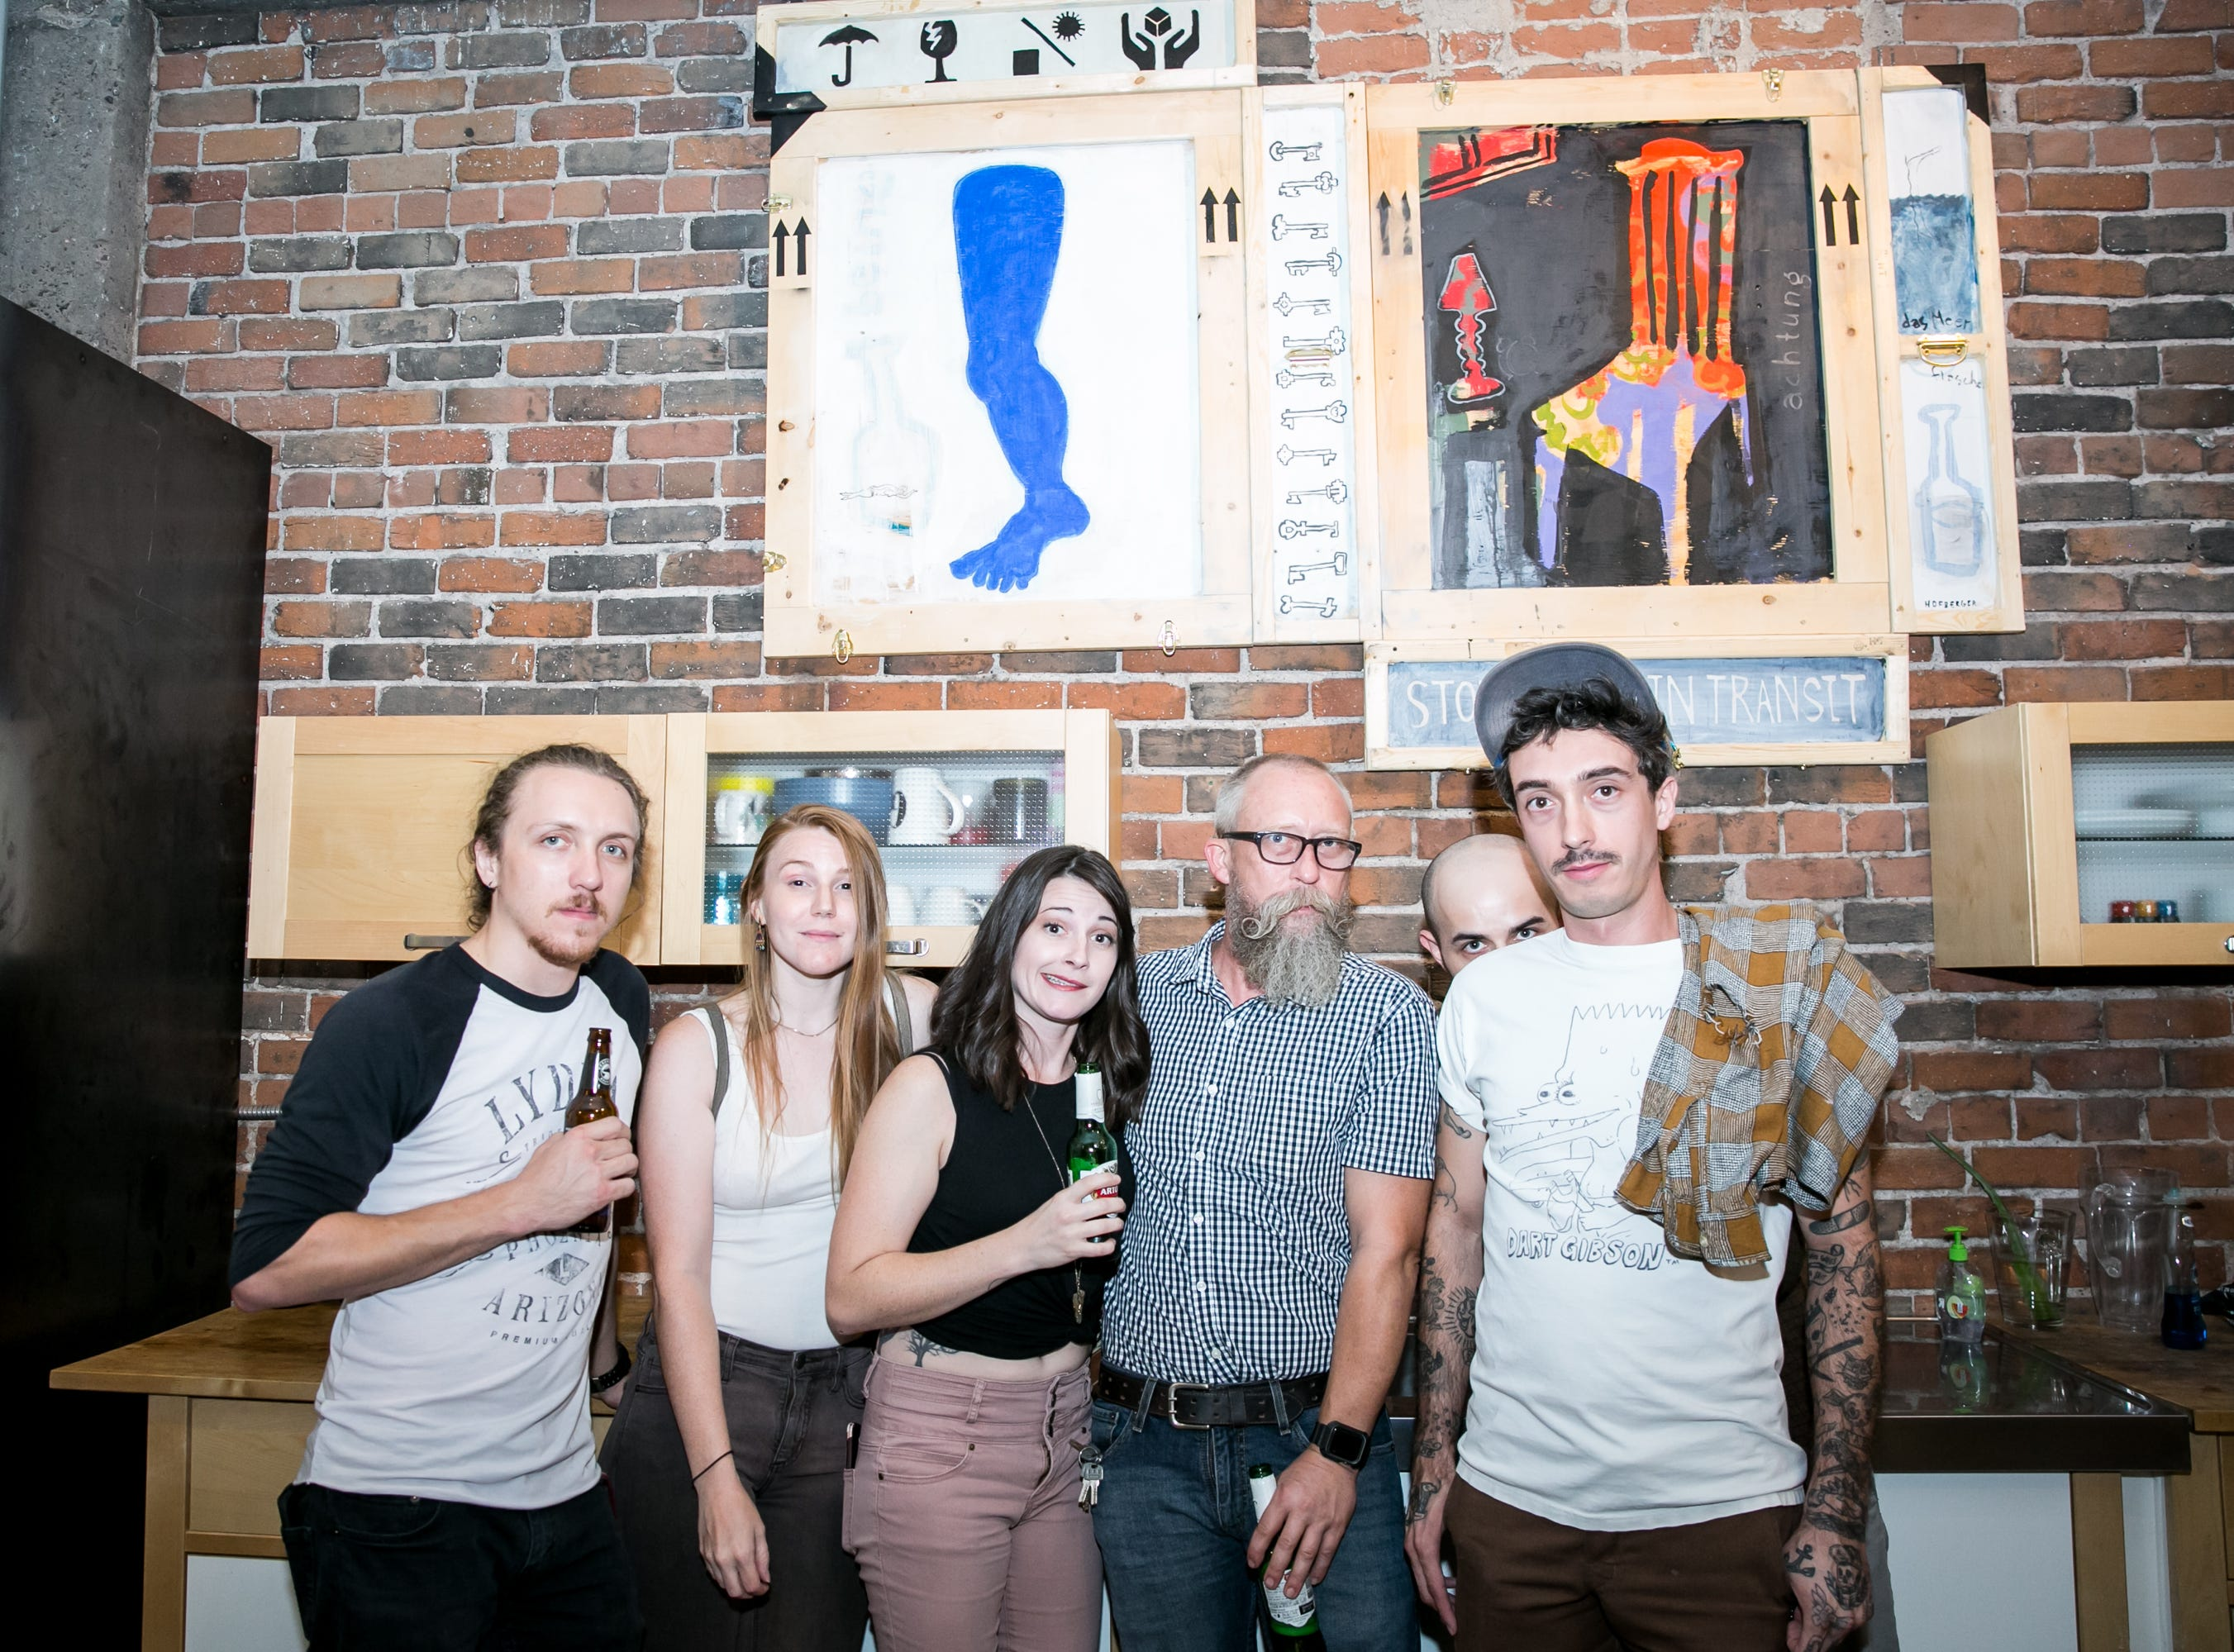 These pals got animated during Chaos Theory 19 at Legend City Studios during First Friday on October 5, 2018.